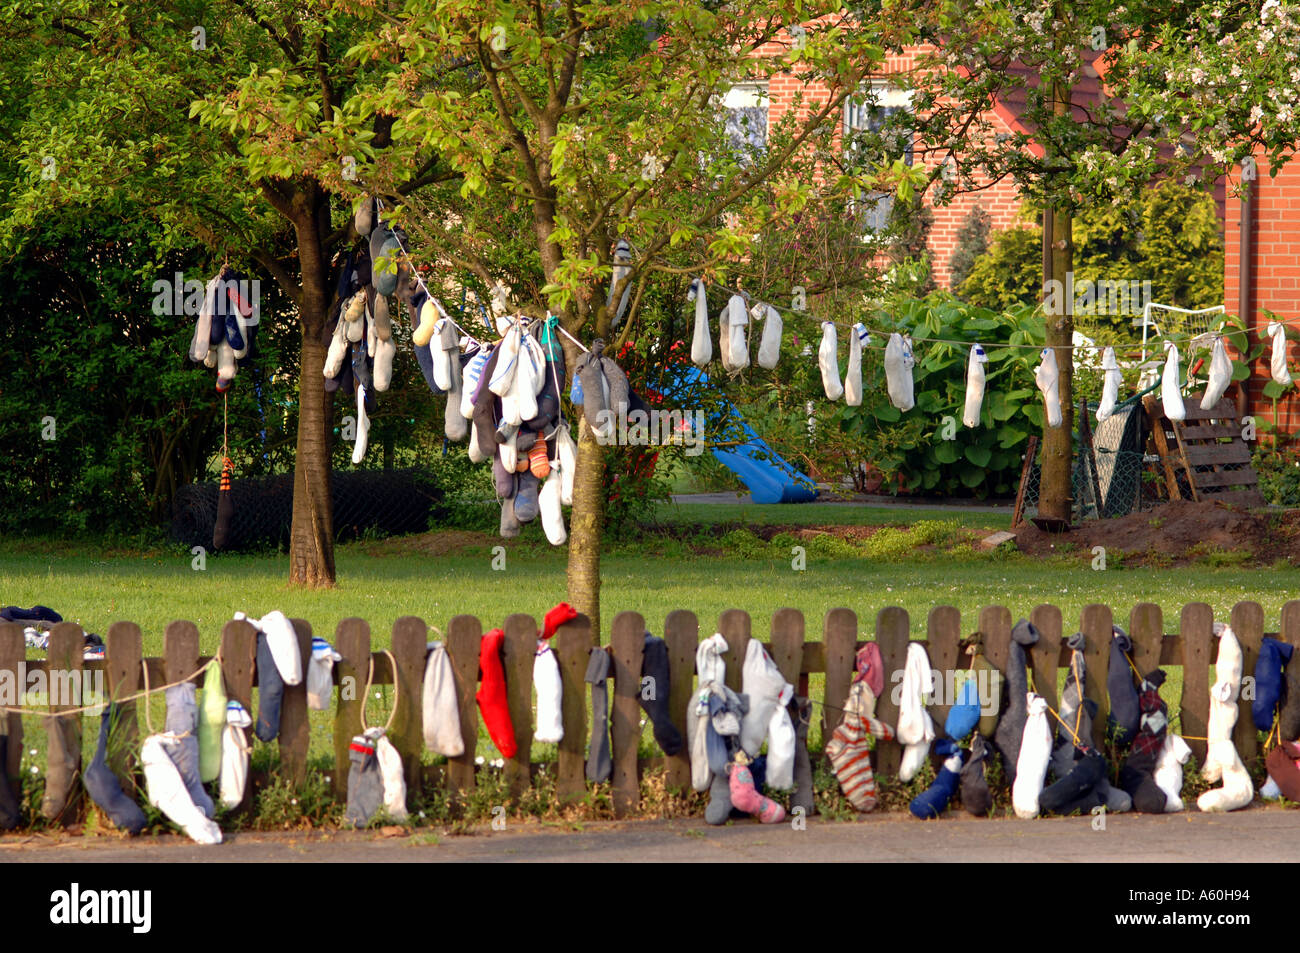 whacky Stock Photos & 'whacky Stock Images - Page 15 - Alamy